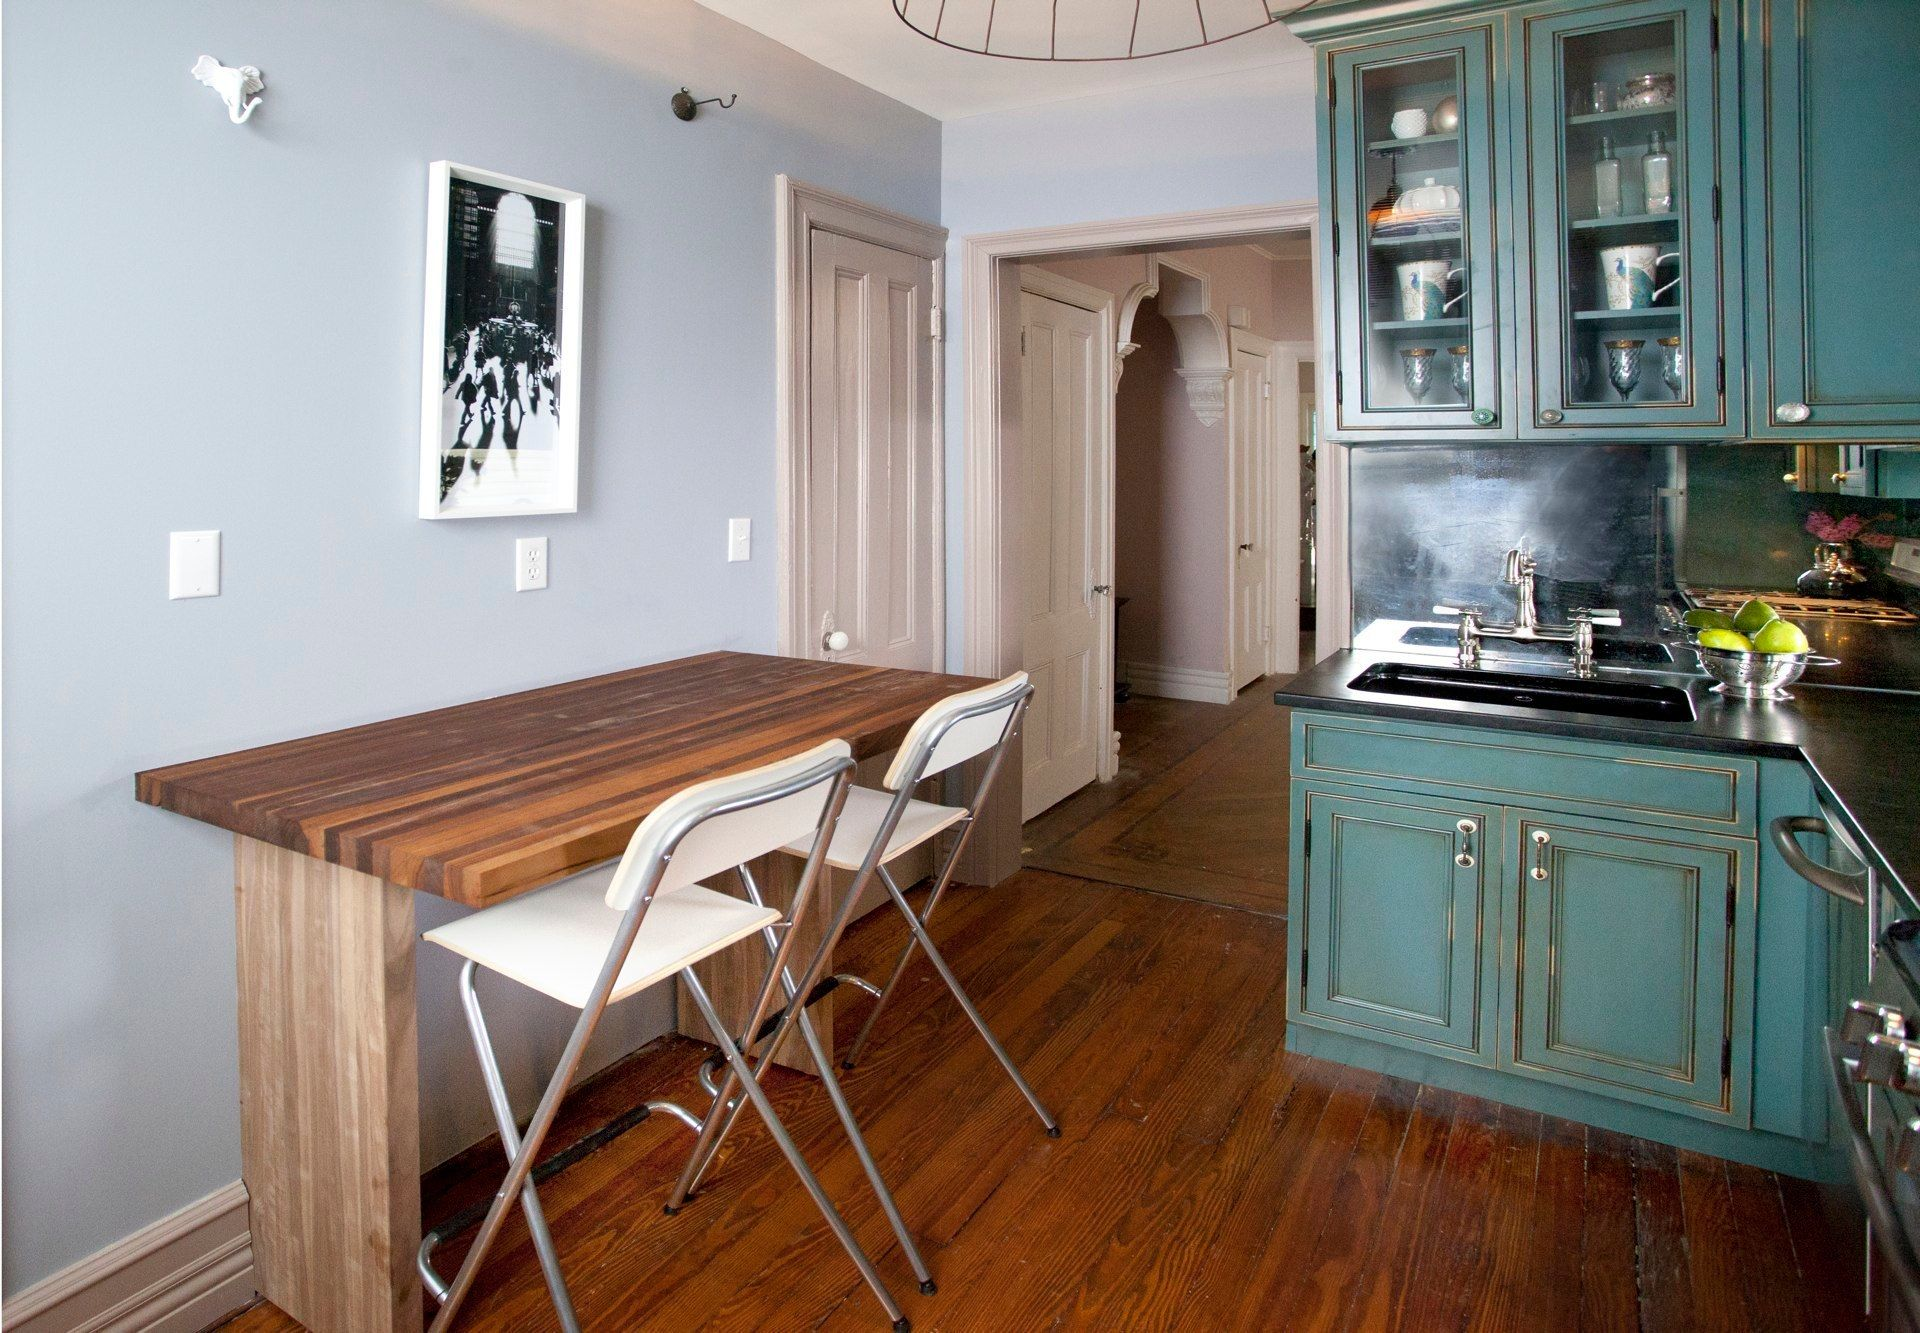 Kitchen Fold Out Table Design Ideas, Pictures, Remodel And Decor